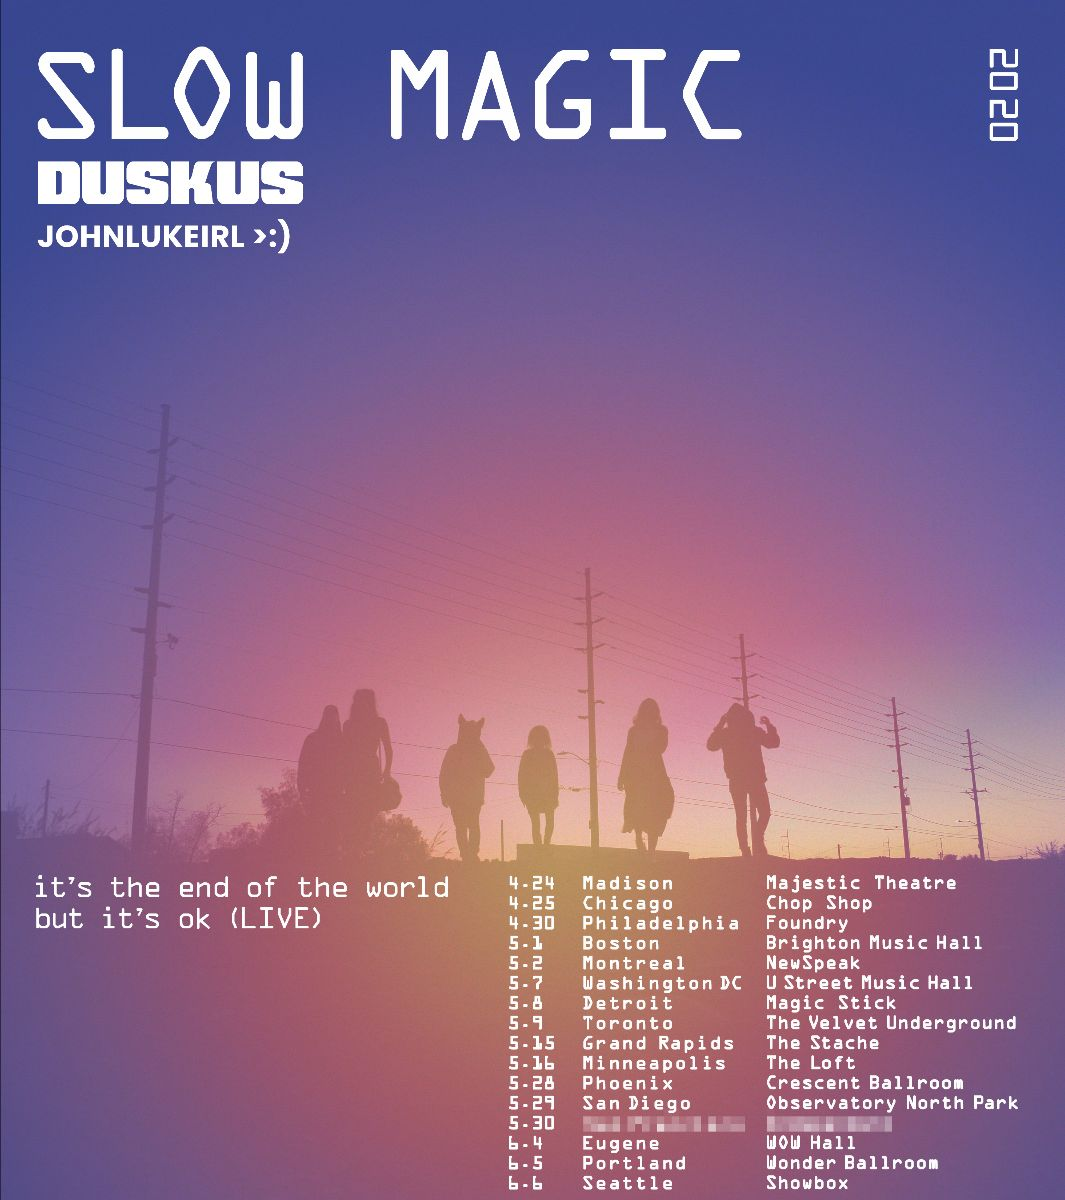 Slow Magic announces it's the end of the world but it's ok North American tour